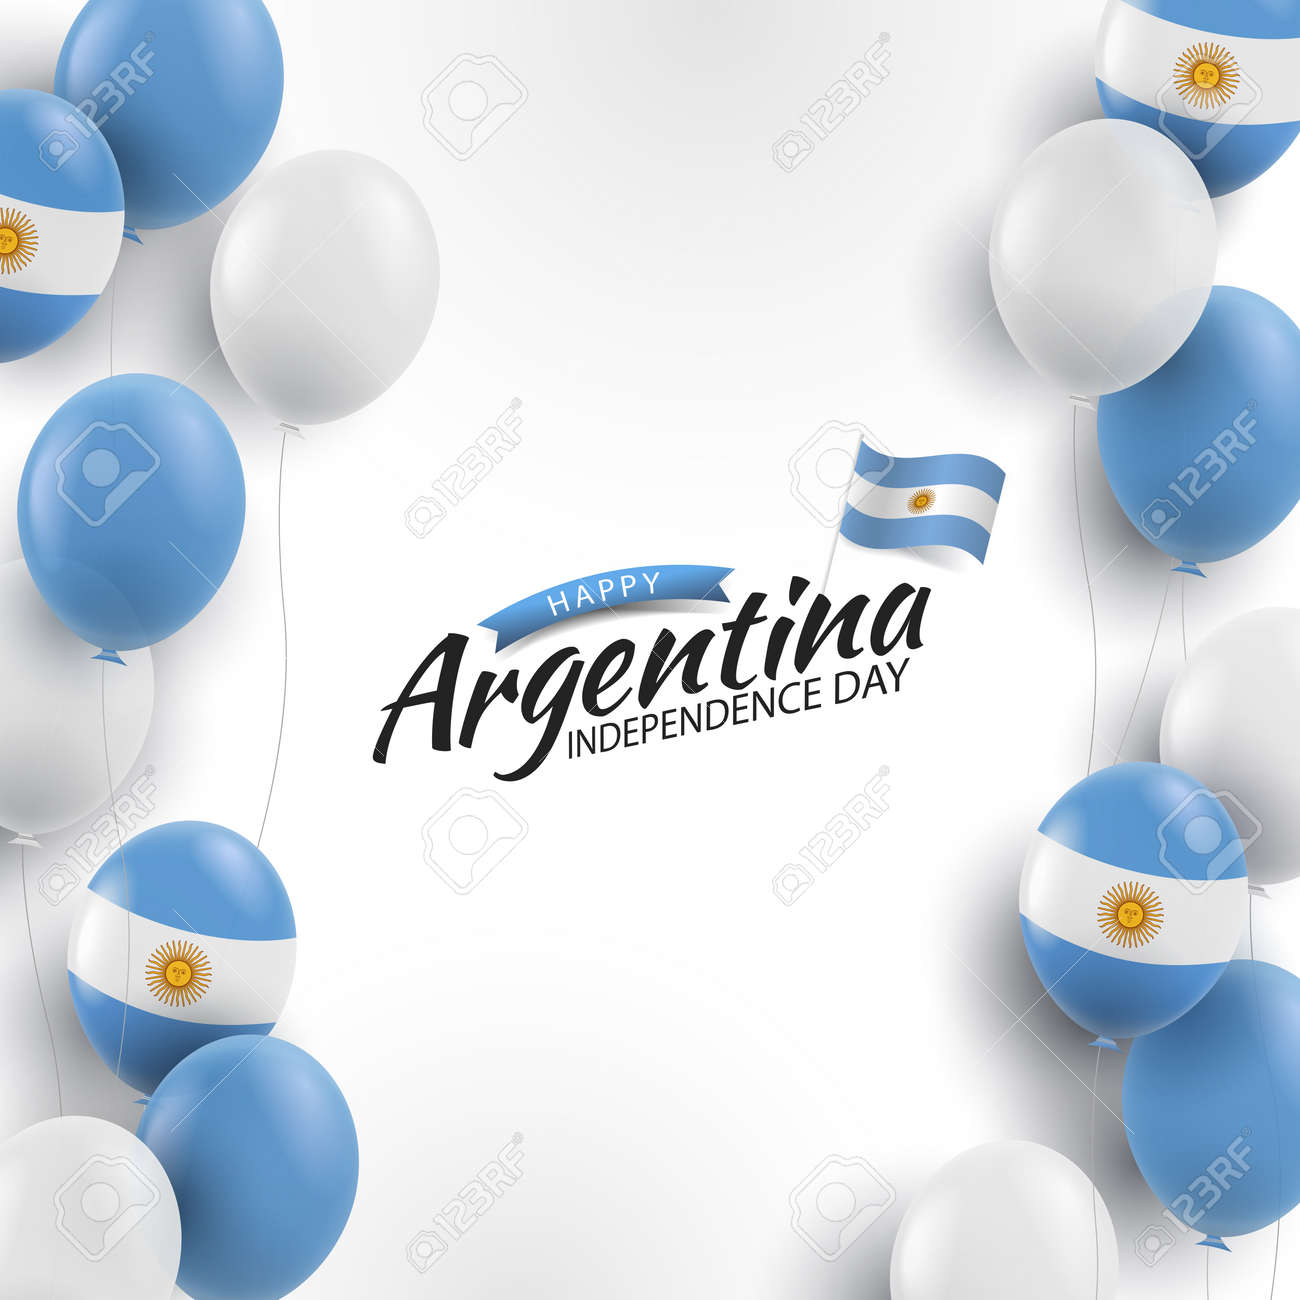 Vector Illustration of Independence Day of Argentina. Background with balloons - 169318188